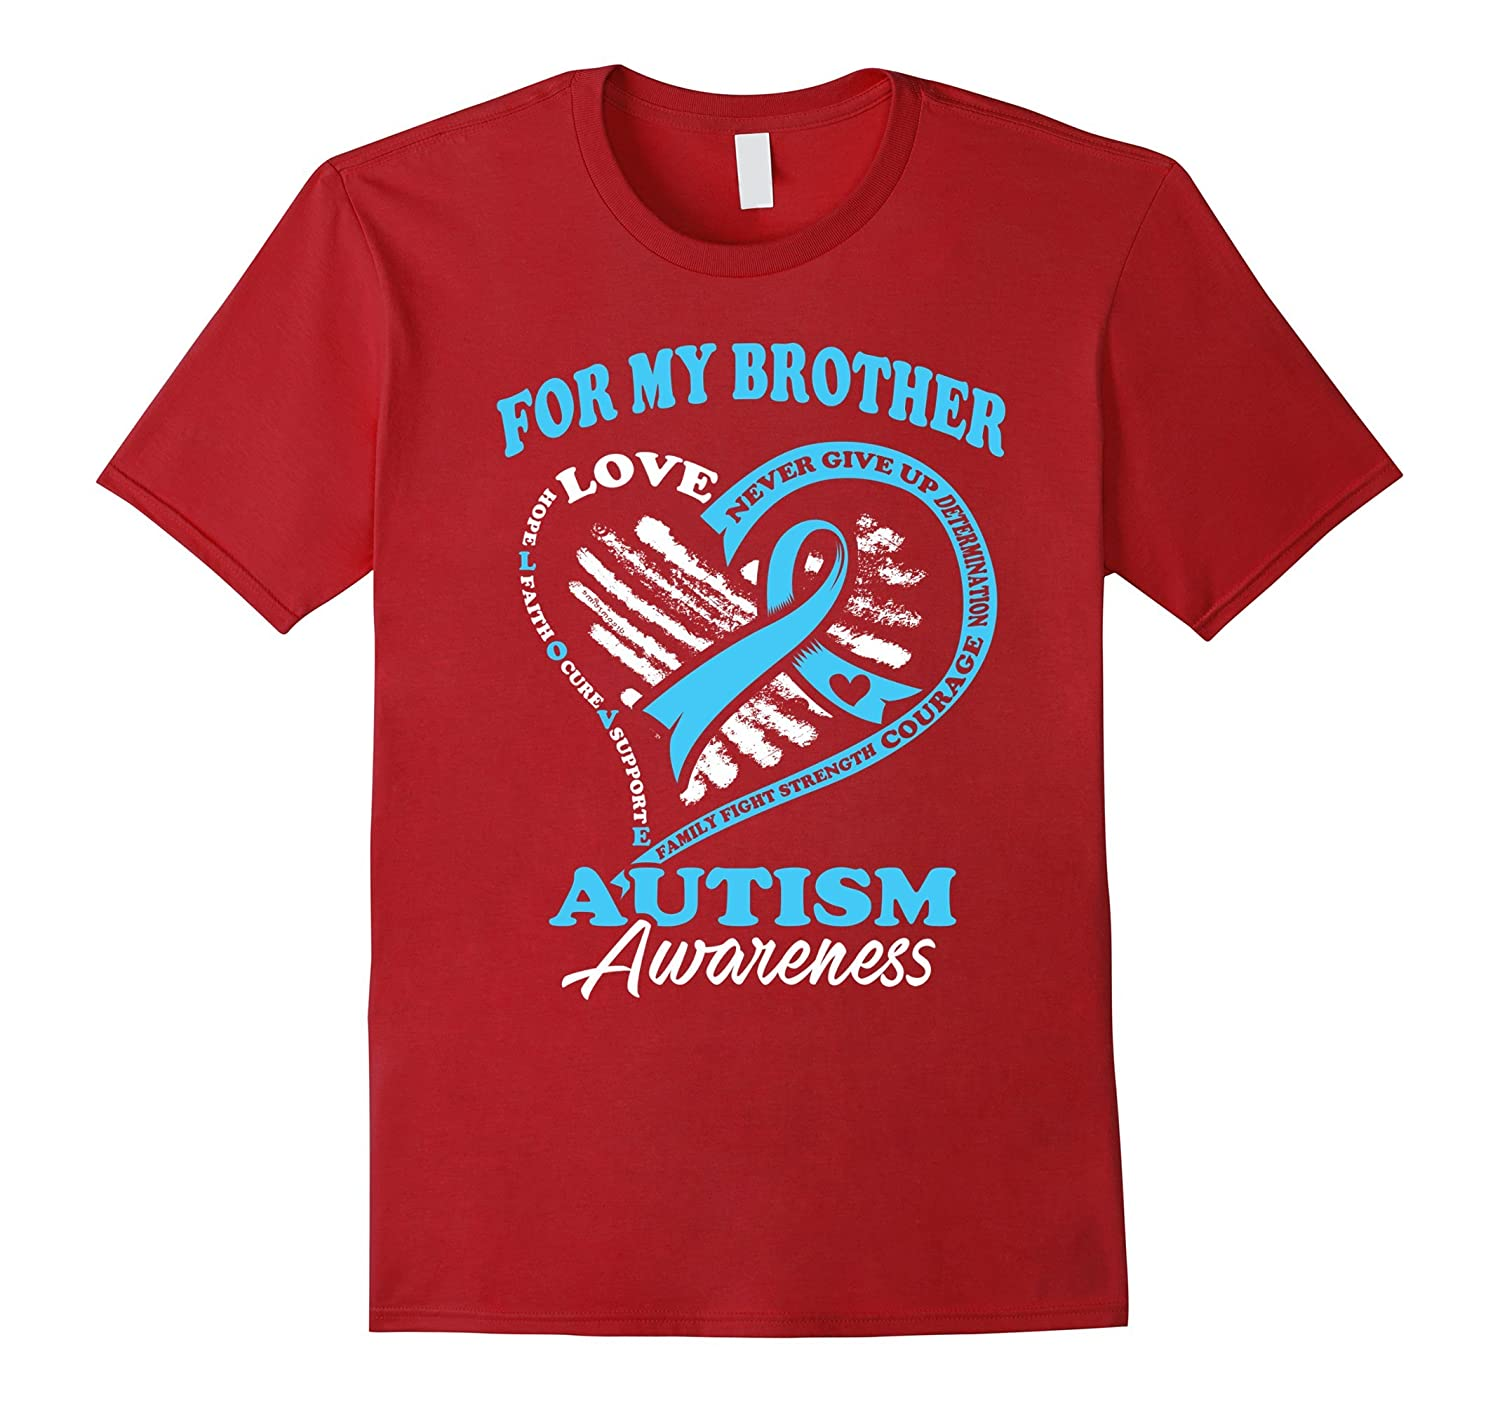 Autism Awareness T Shirt For My Brother